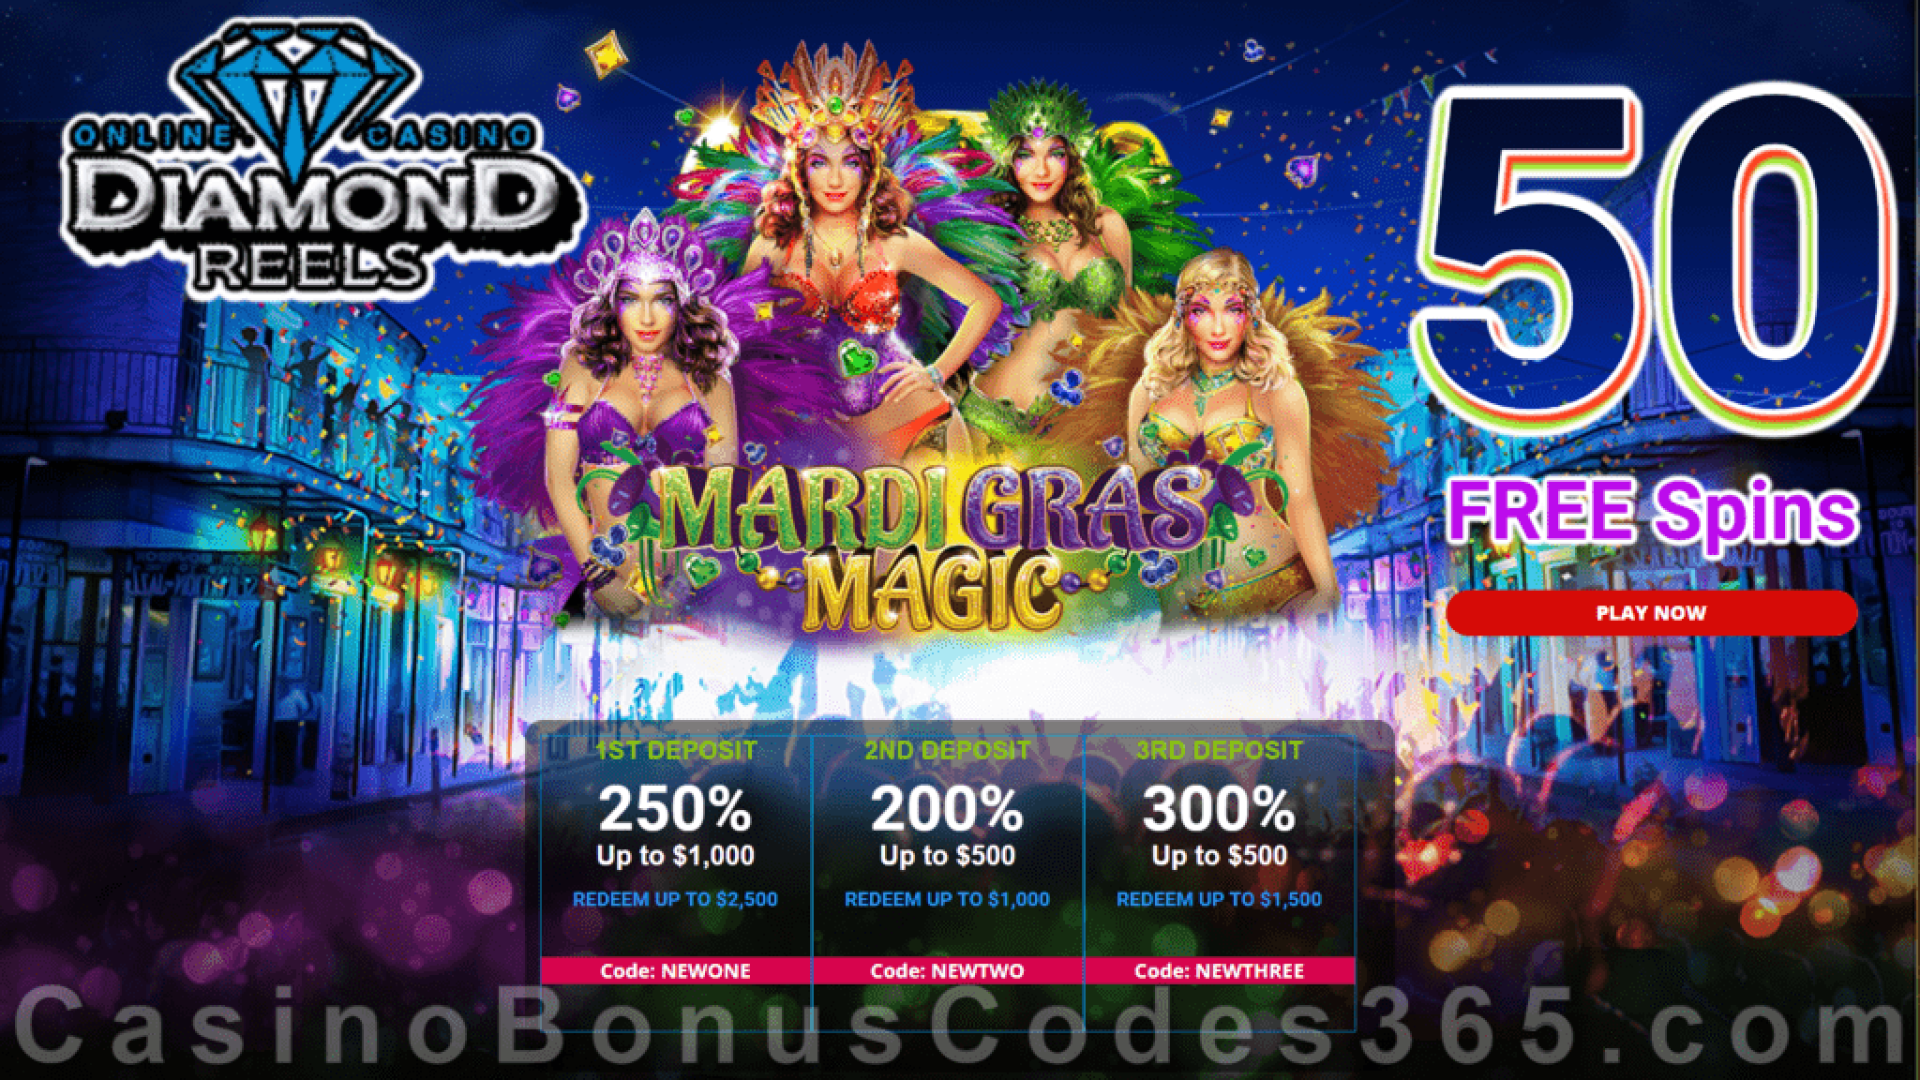 Diamond Reels Casino 50 FREE Mardi Gras Magic Spins New RTG Game Special Promo